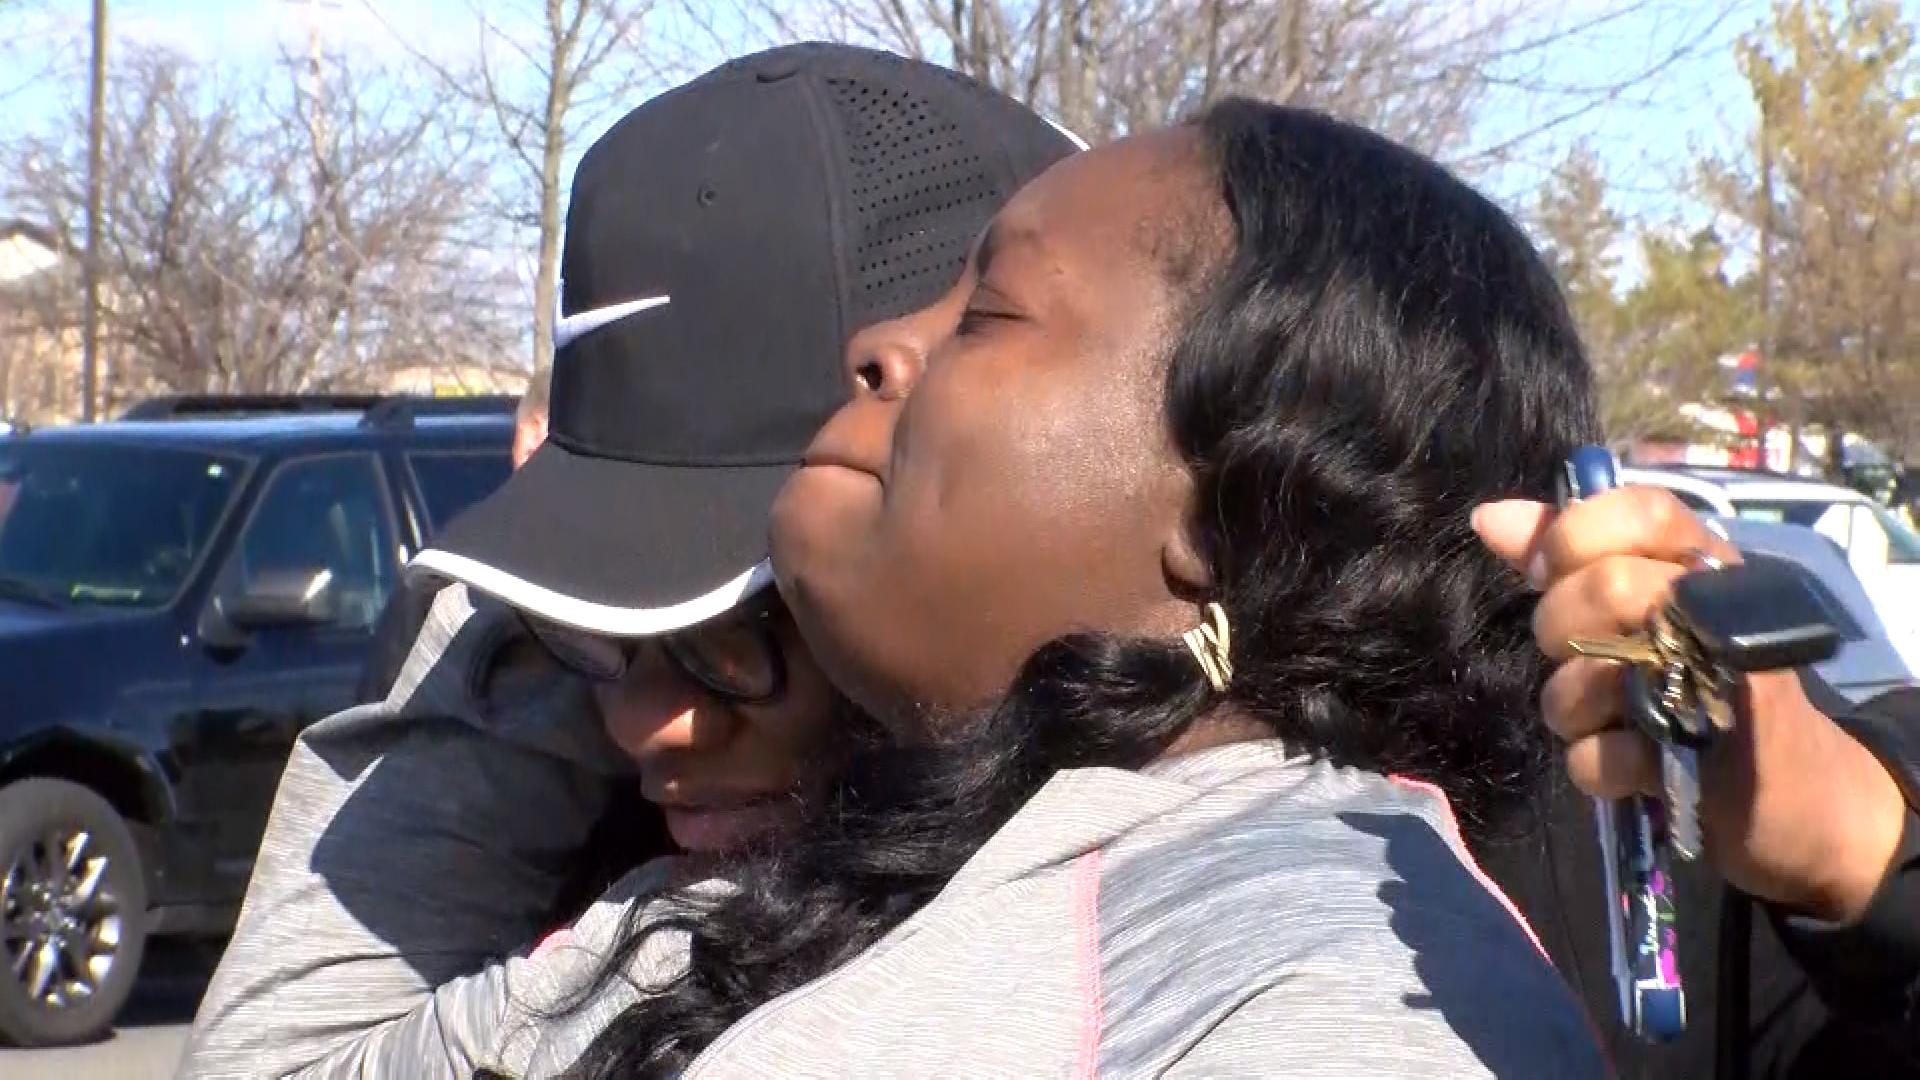 Families were reunited at the Comfort Inn in Mt. Pleasant. <br><br><p></p>